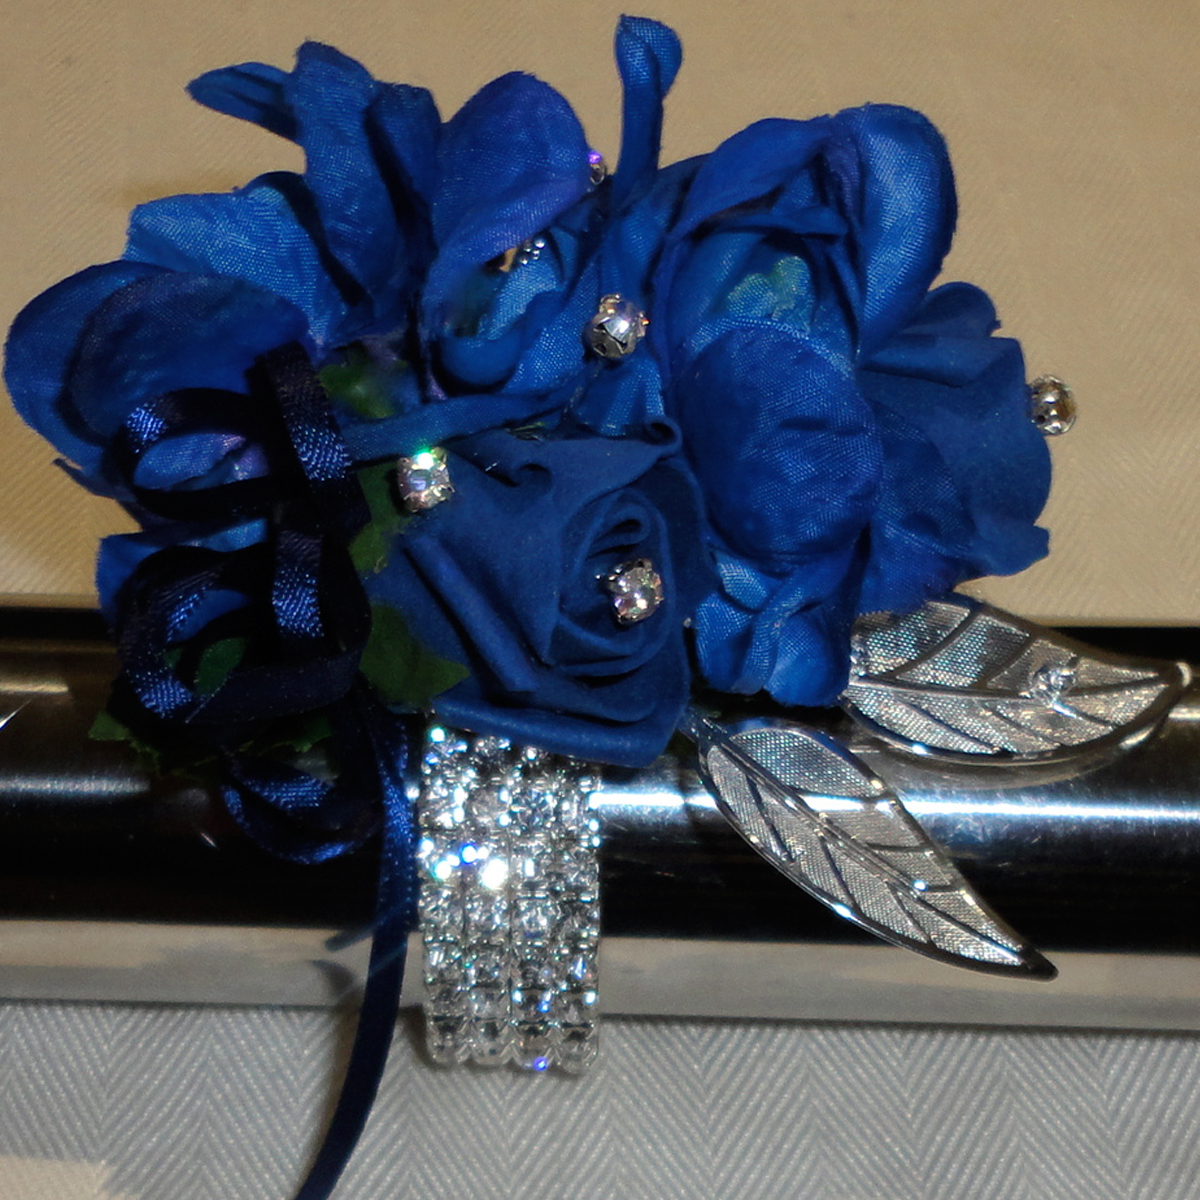 The floral touch uk wrist corsages prom corsage wrist midnightlight navy blue wrist corsage izmirmasajfo Gallery